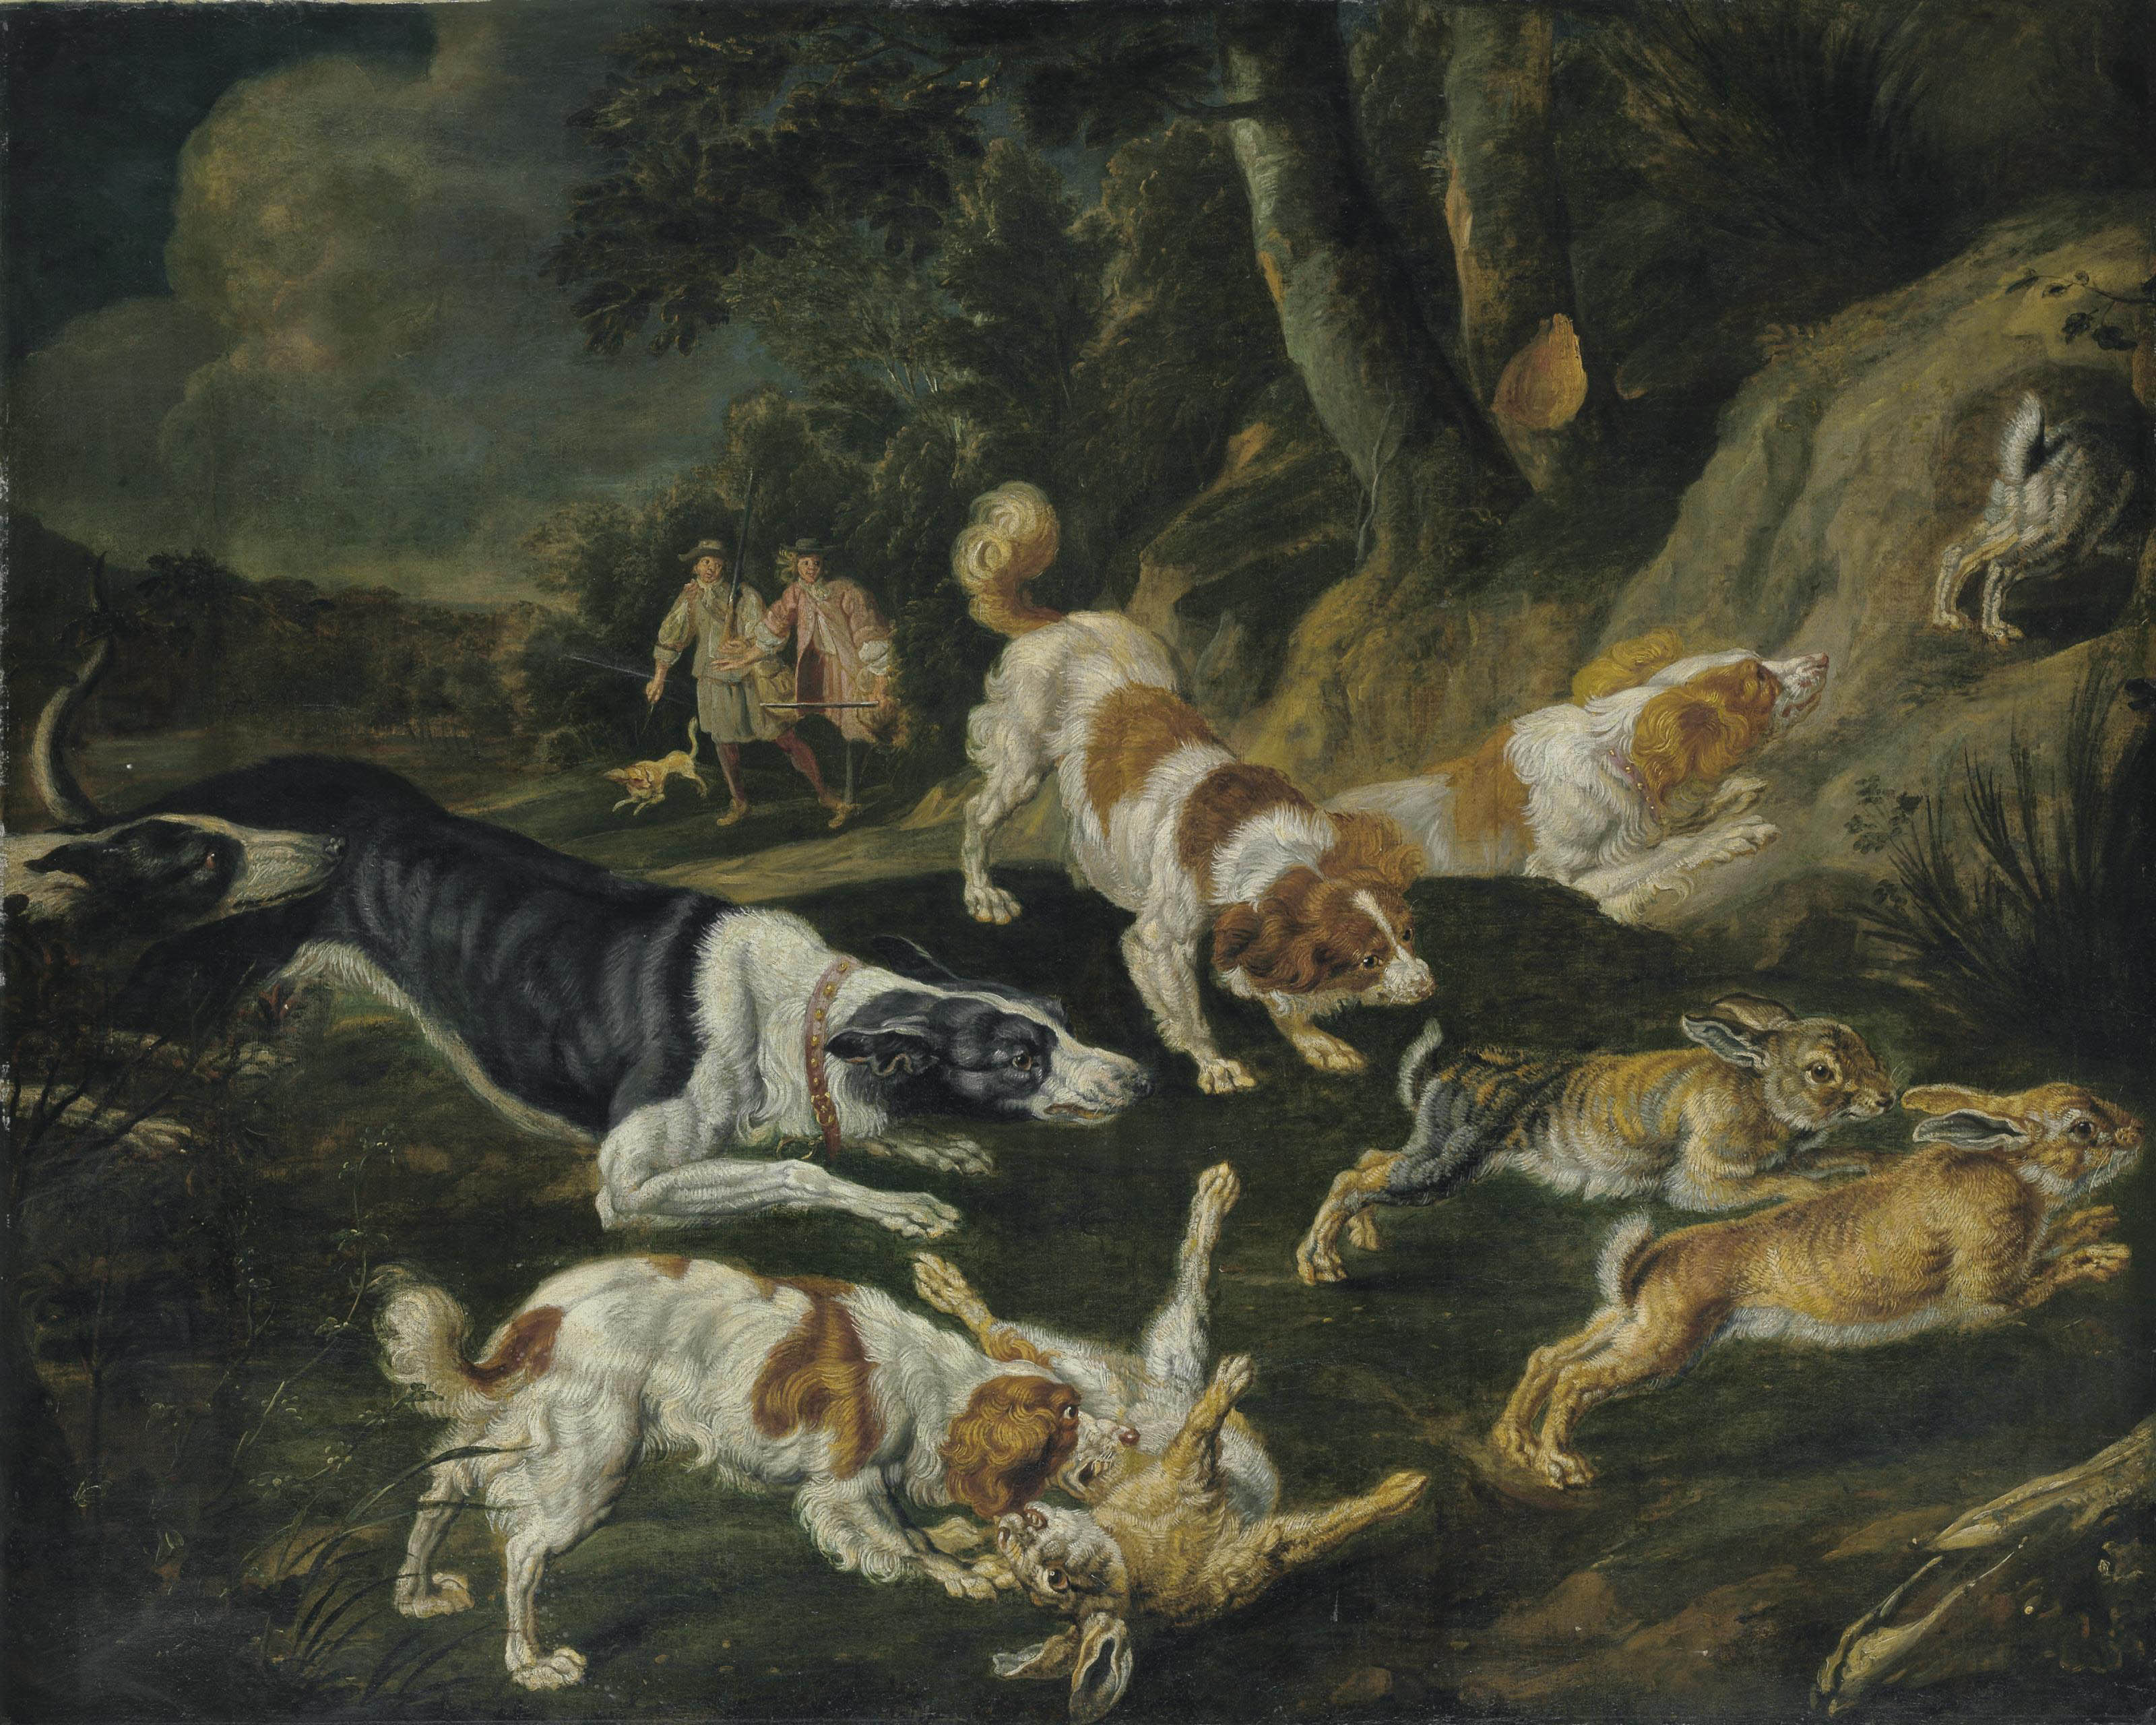 Hares brought down by hounds with two hunters in the distance